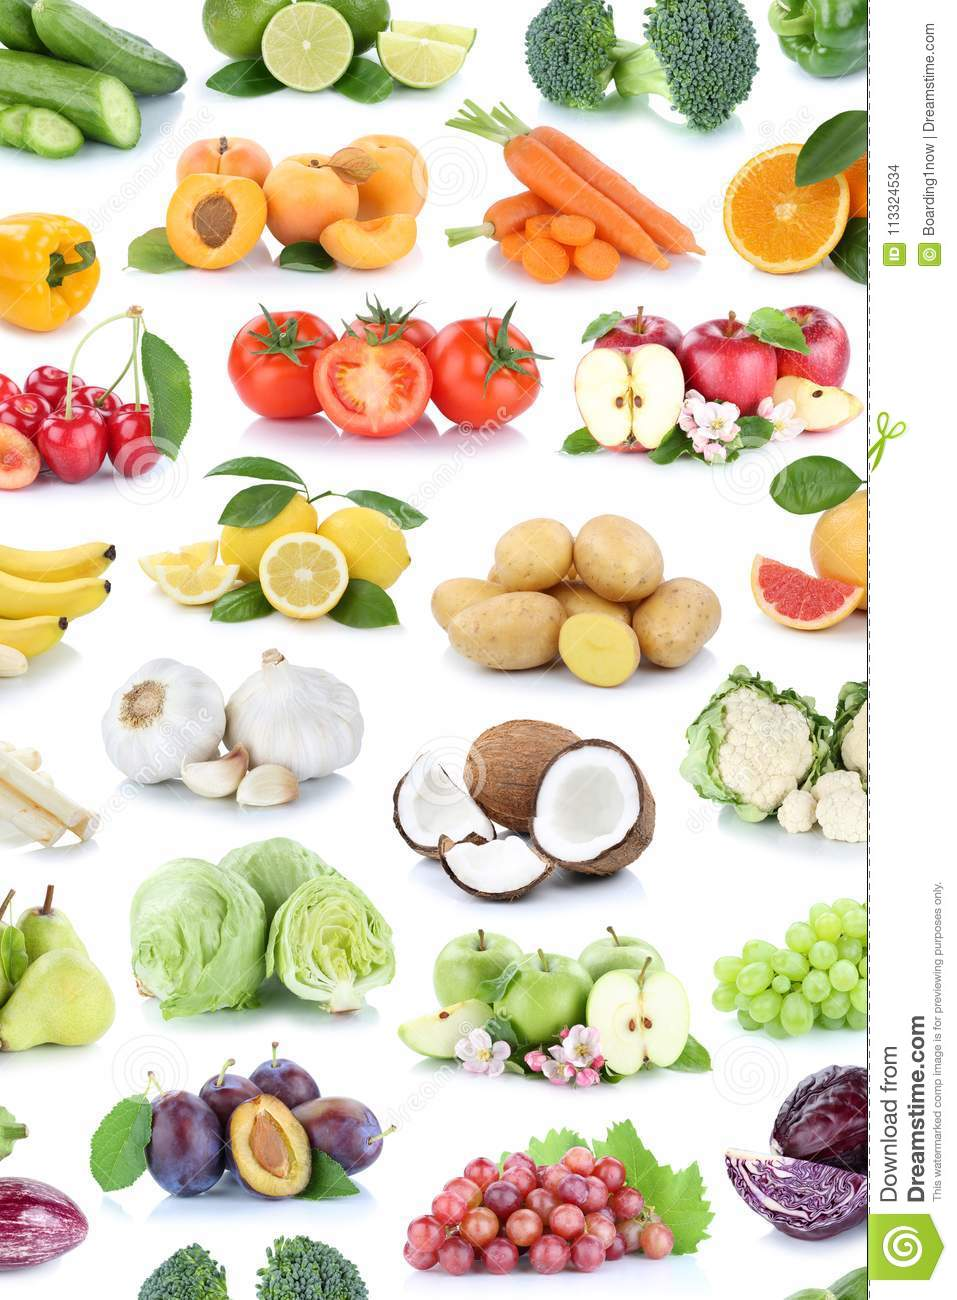 fruit grapes lemons banana fruits tomatoes vegetables apples oranges isolated colors background collection bana preview vegetable